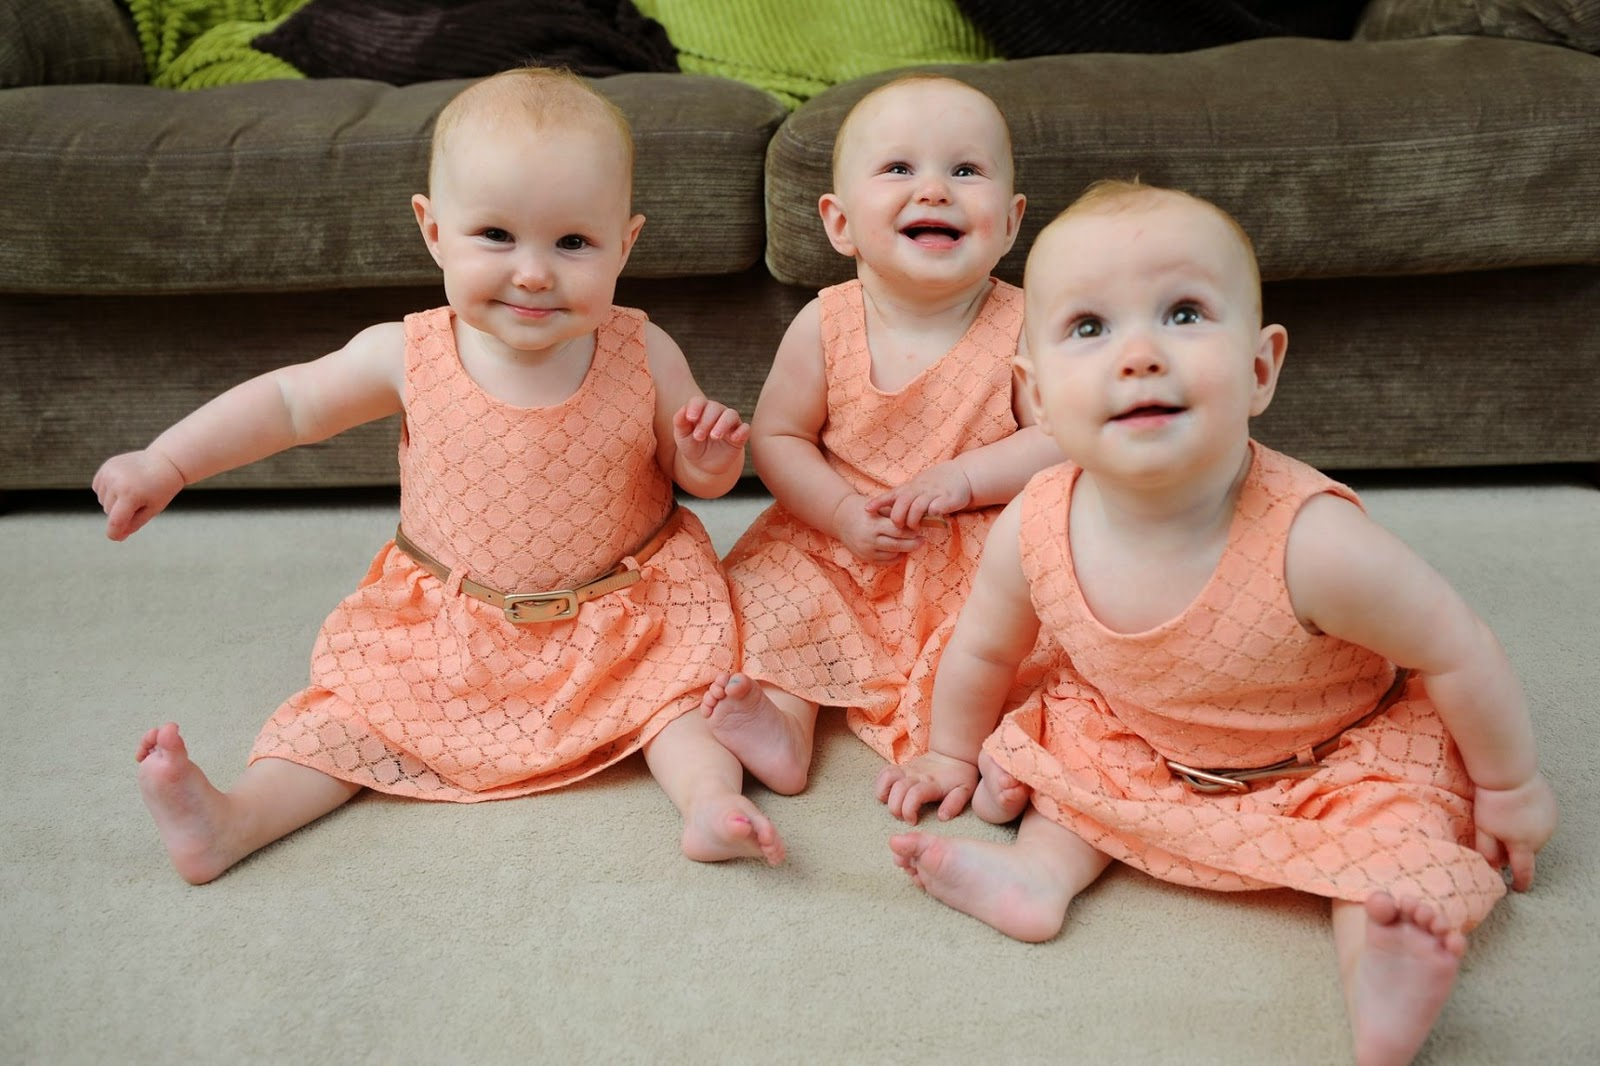 Identical Triplets Have Their Toenails Painted Different